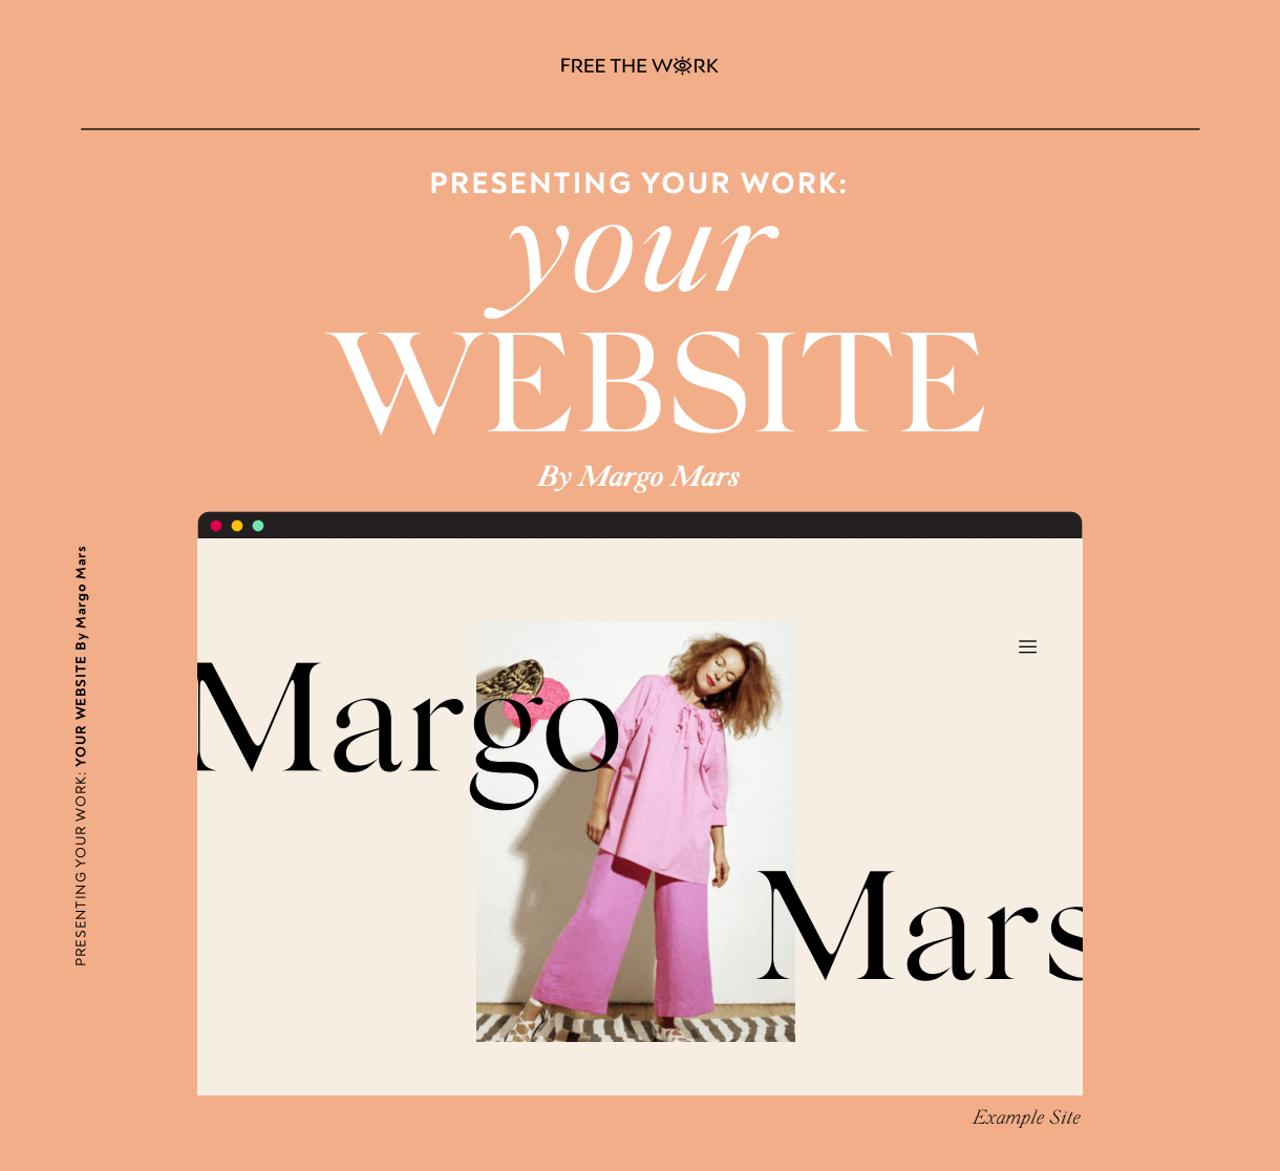 Free The Work first 'How-to-Guide' by Margo Mars